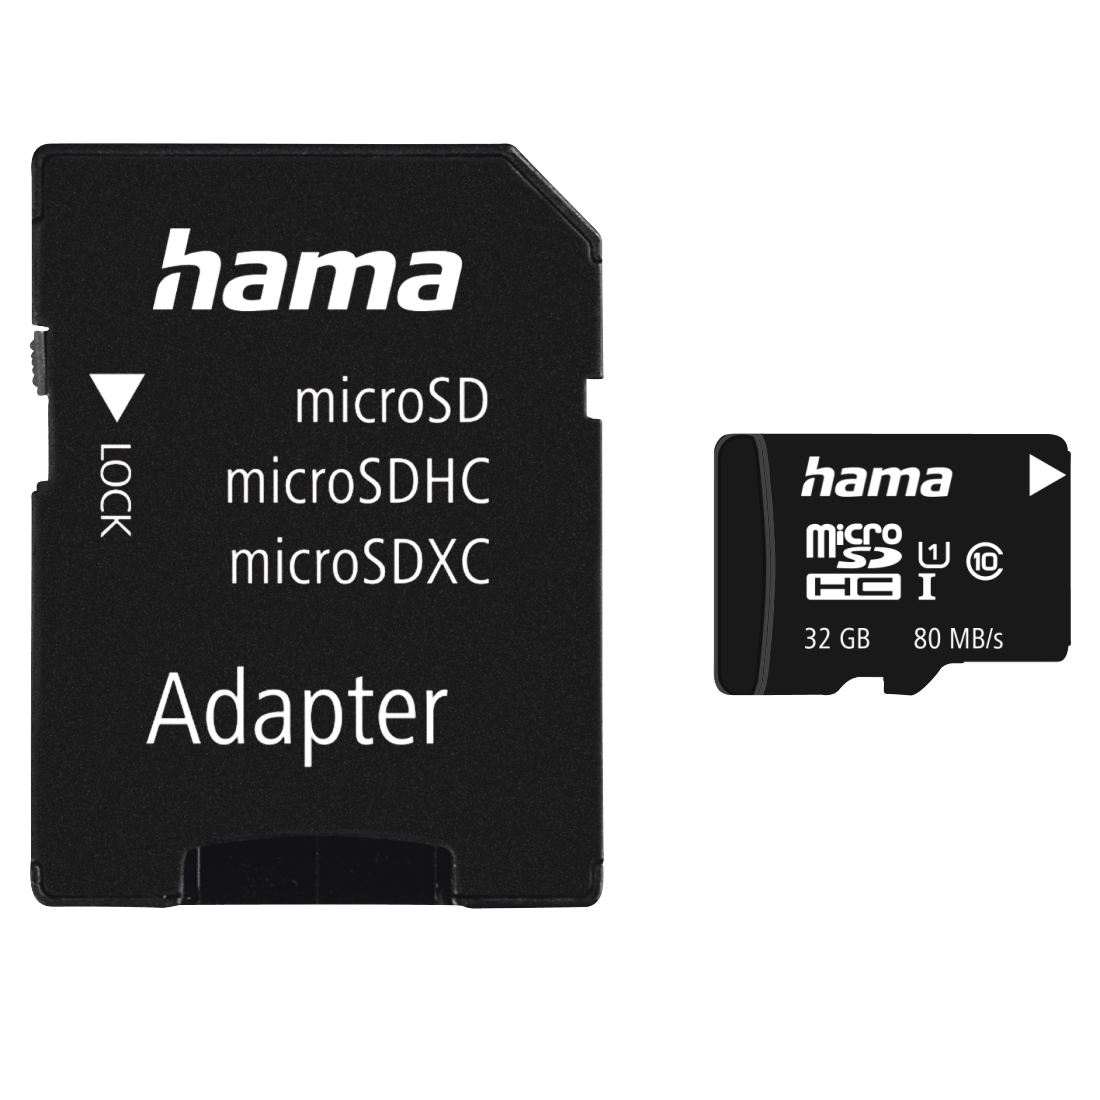 abx High-Res Image - Hama, microSDHC 32GB Class 10 UHS-I 80MB/s + Adapter/Photo